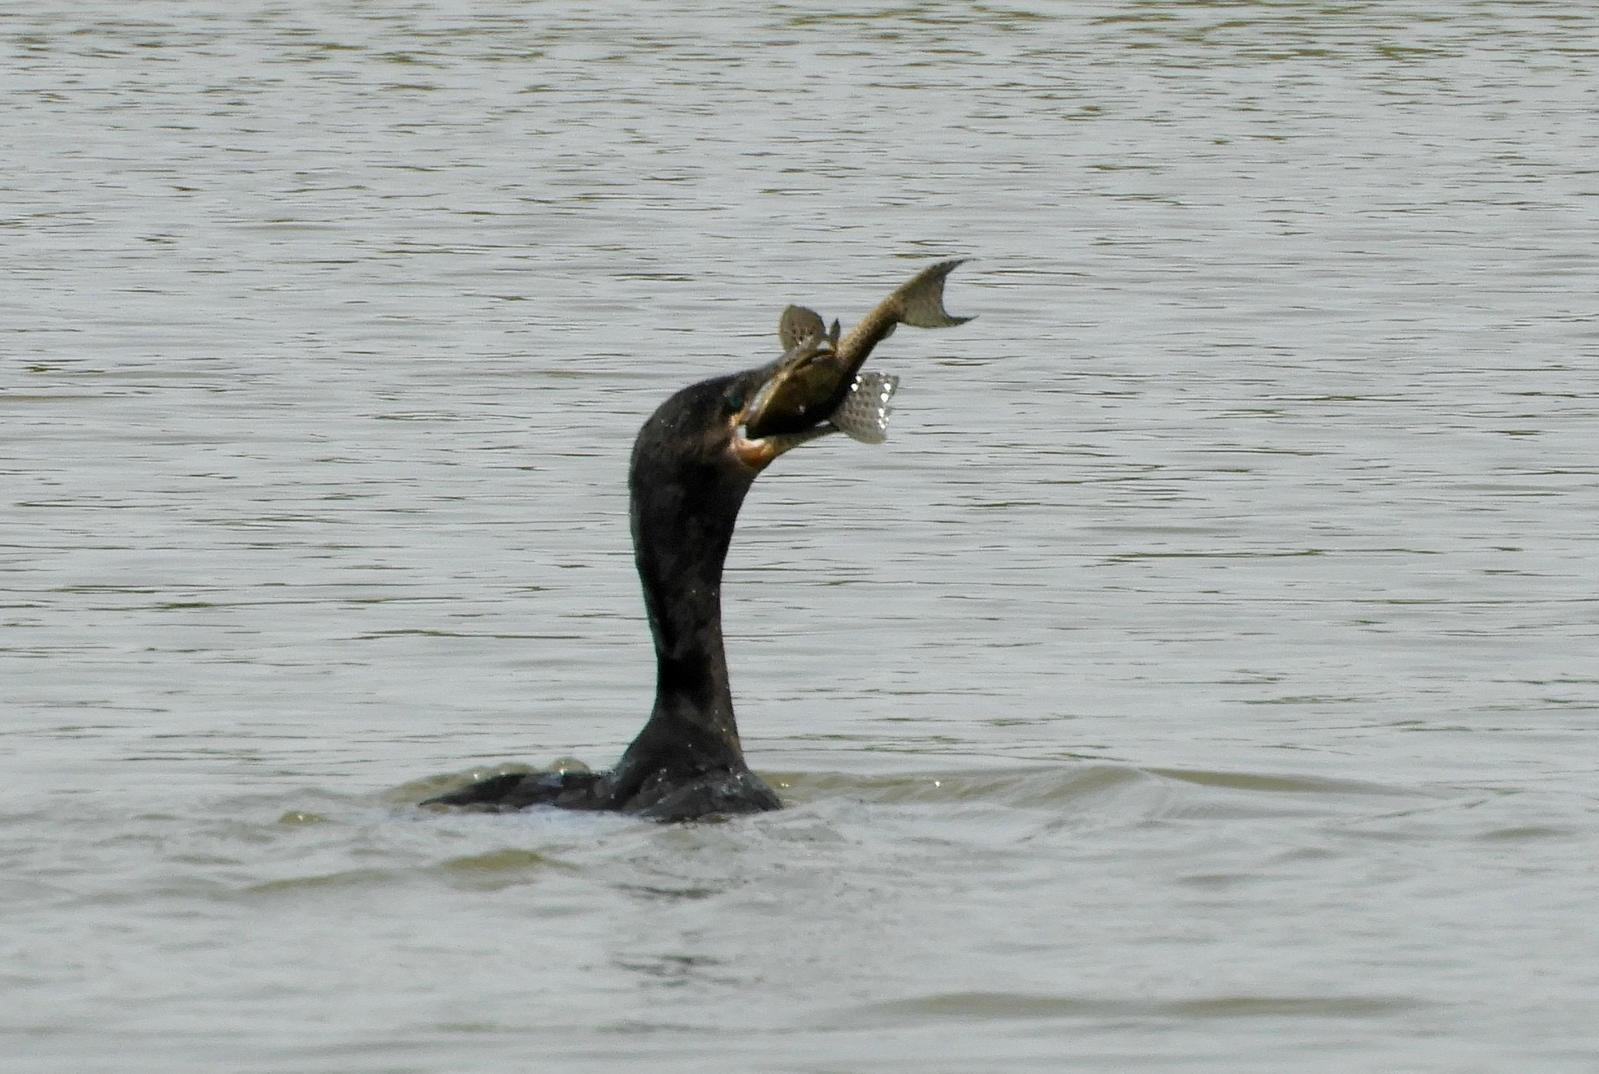 Neotropic Cormorant Photo by Thomas Michel